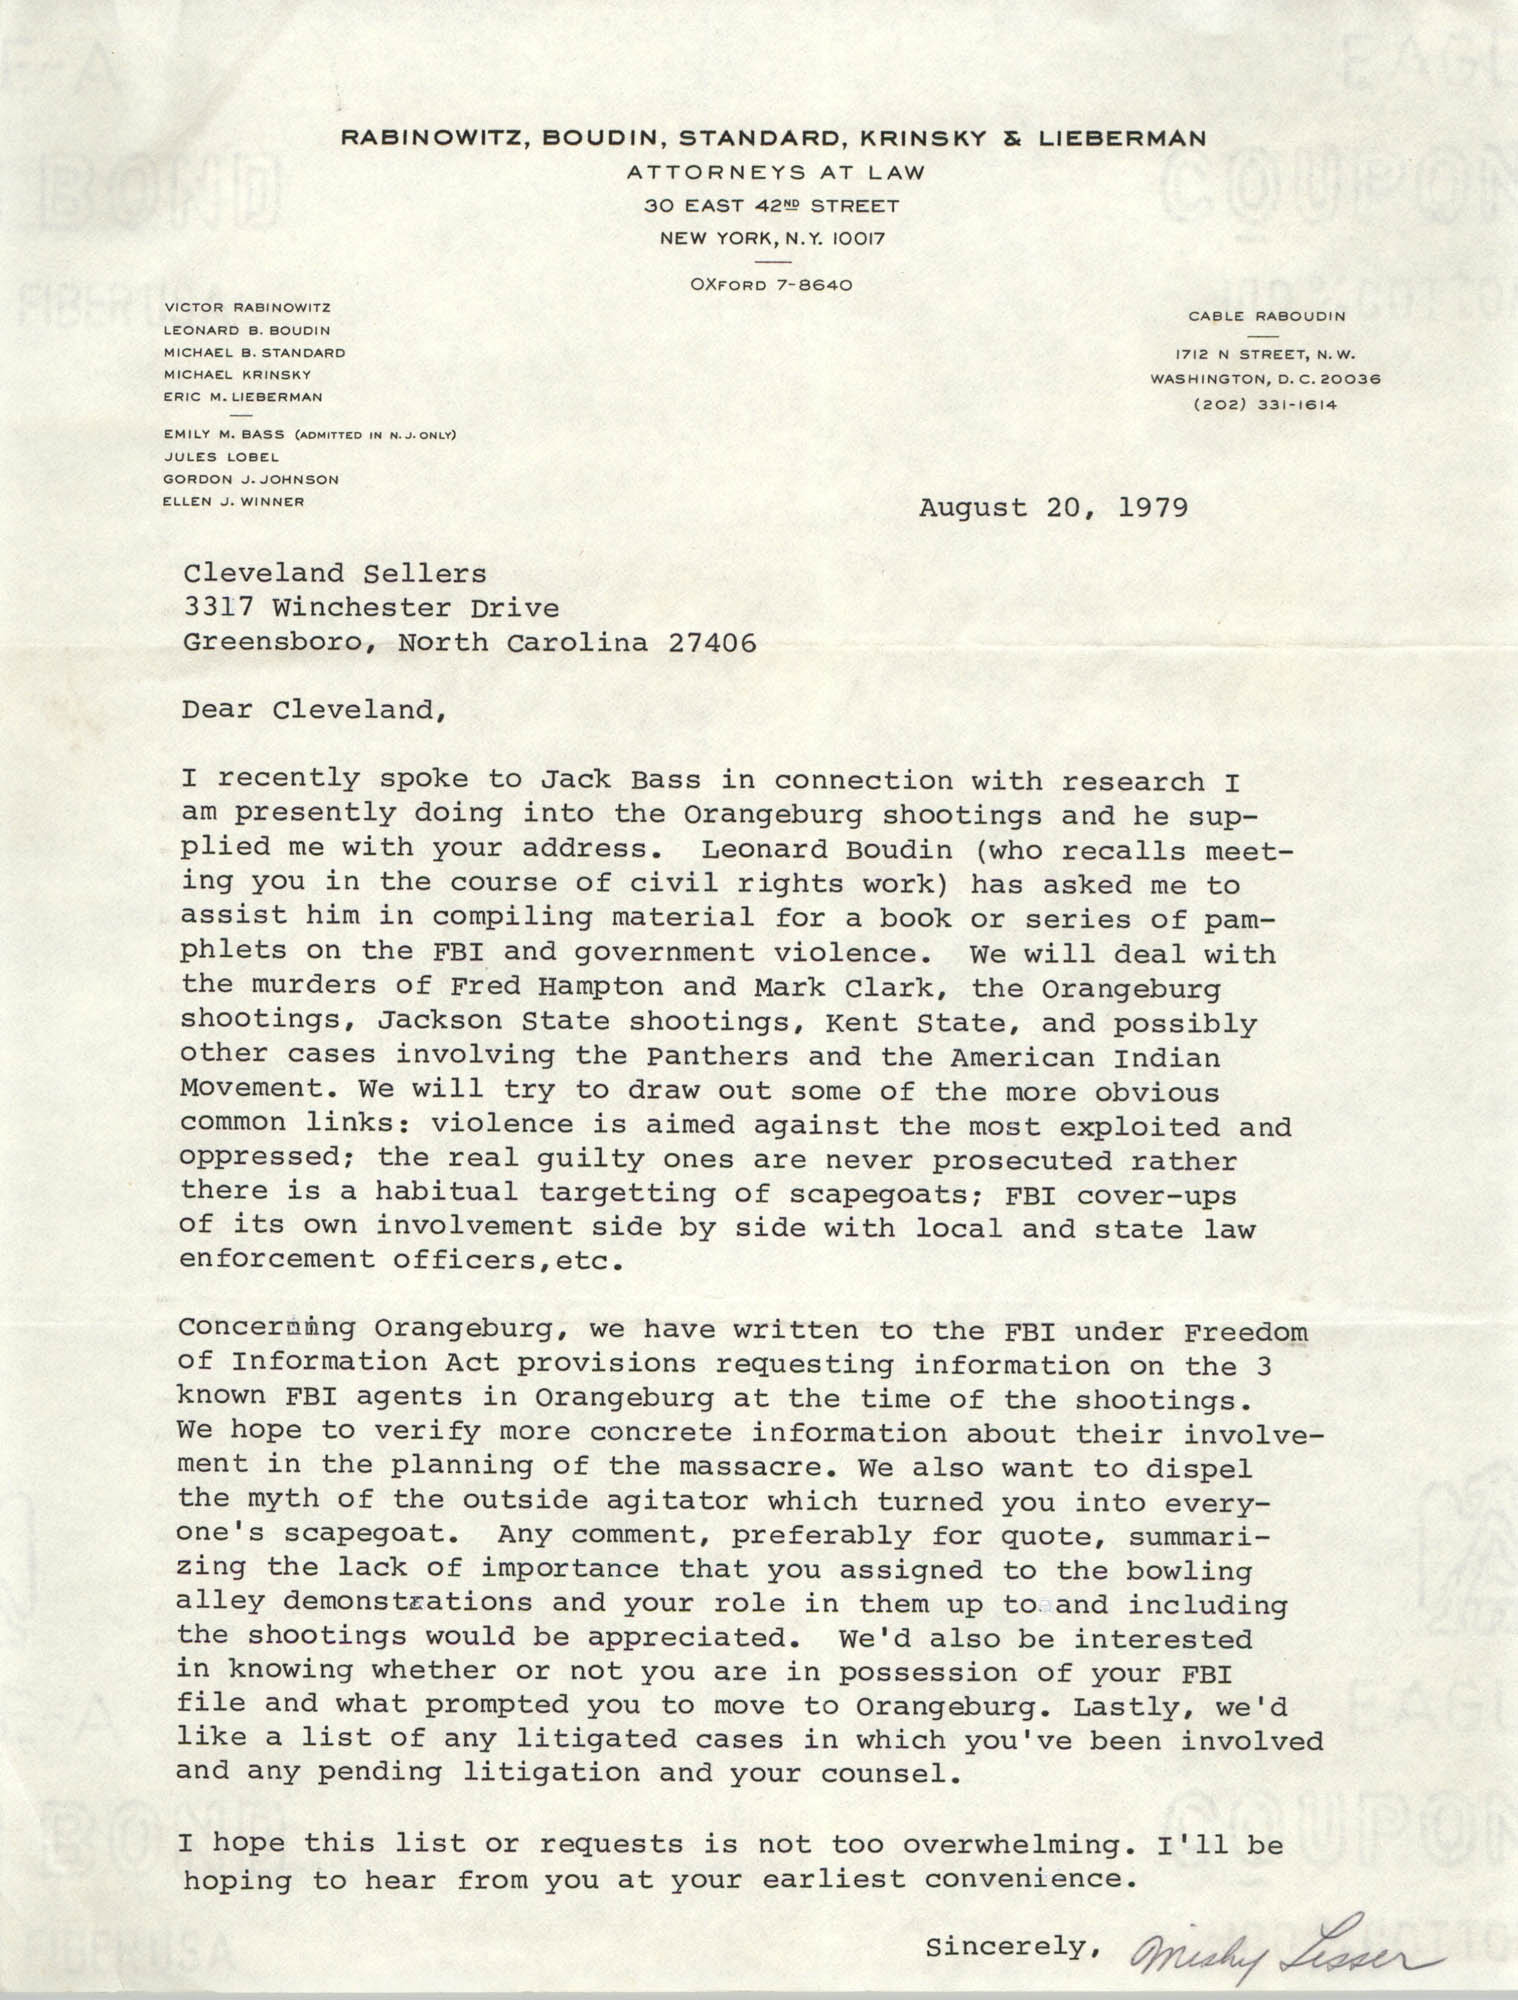 Letter from Mishy Lesser to Cleveland Sellers, August 20, 1979